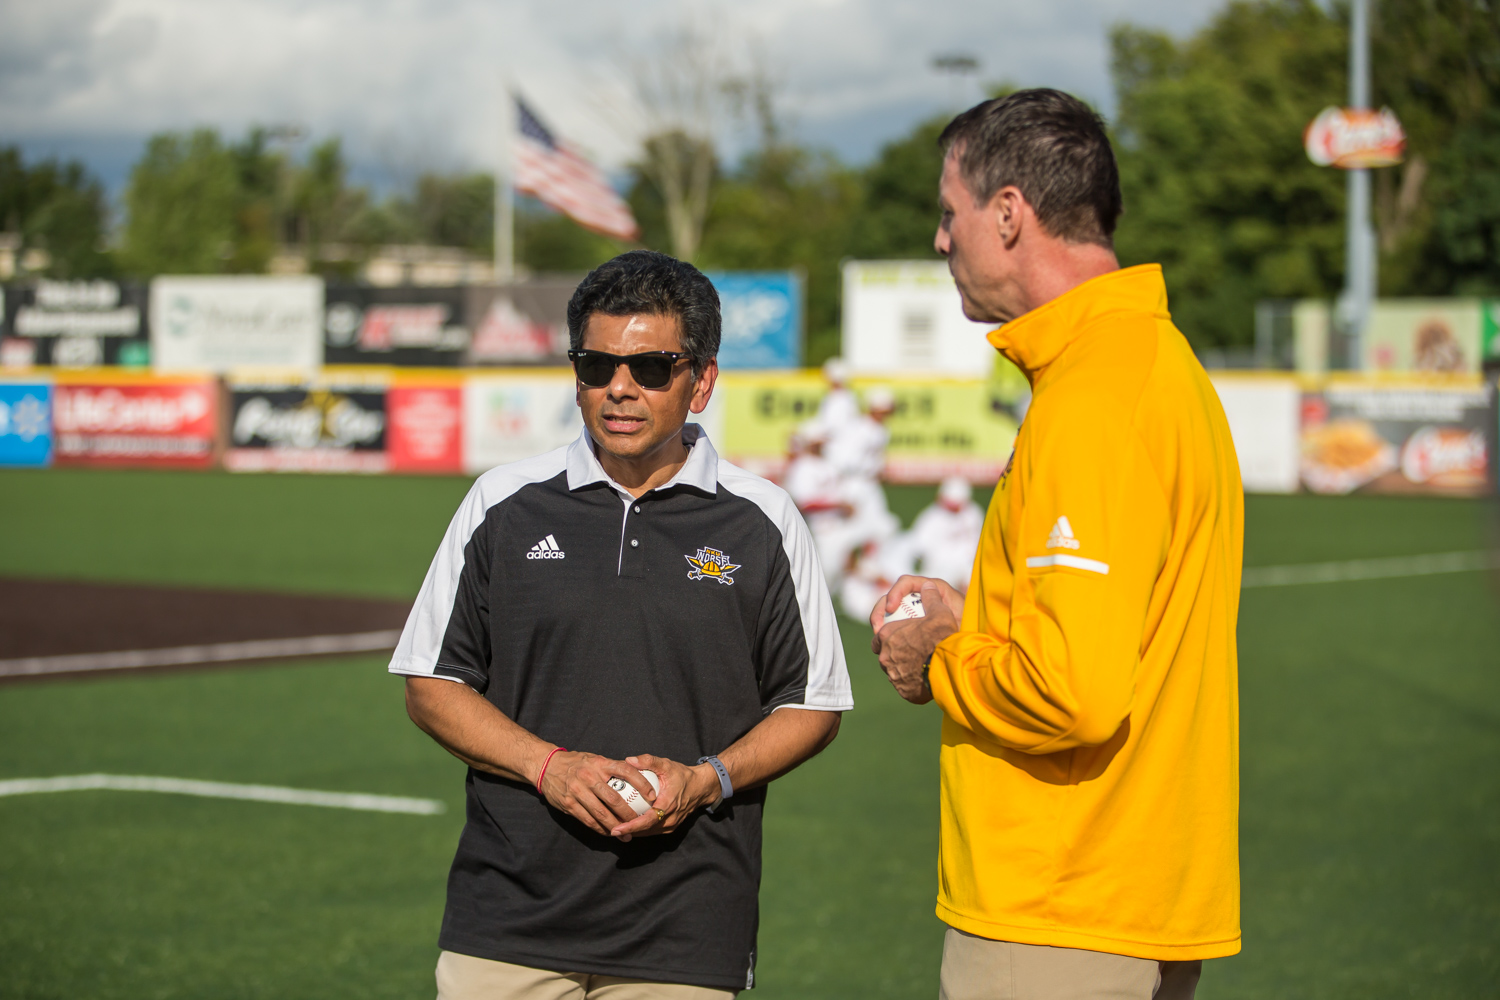 Men%27s+Basketball+Head+Coach+Darrin+Horn+%28right%29+talks+with+NKU+President+Ashish+Vaidya+%28left%29+prior+to+the+first+pitch+at+the+Florence+Freedom+Baseball+Game.